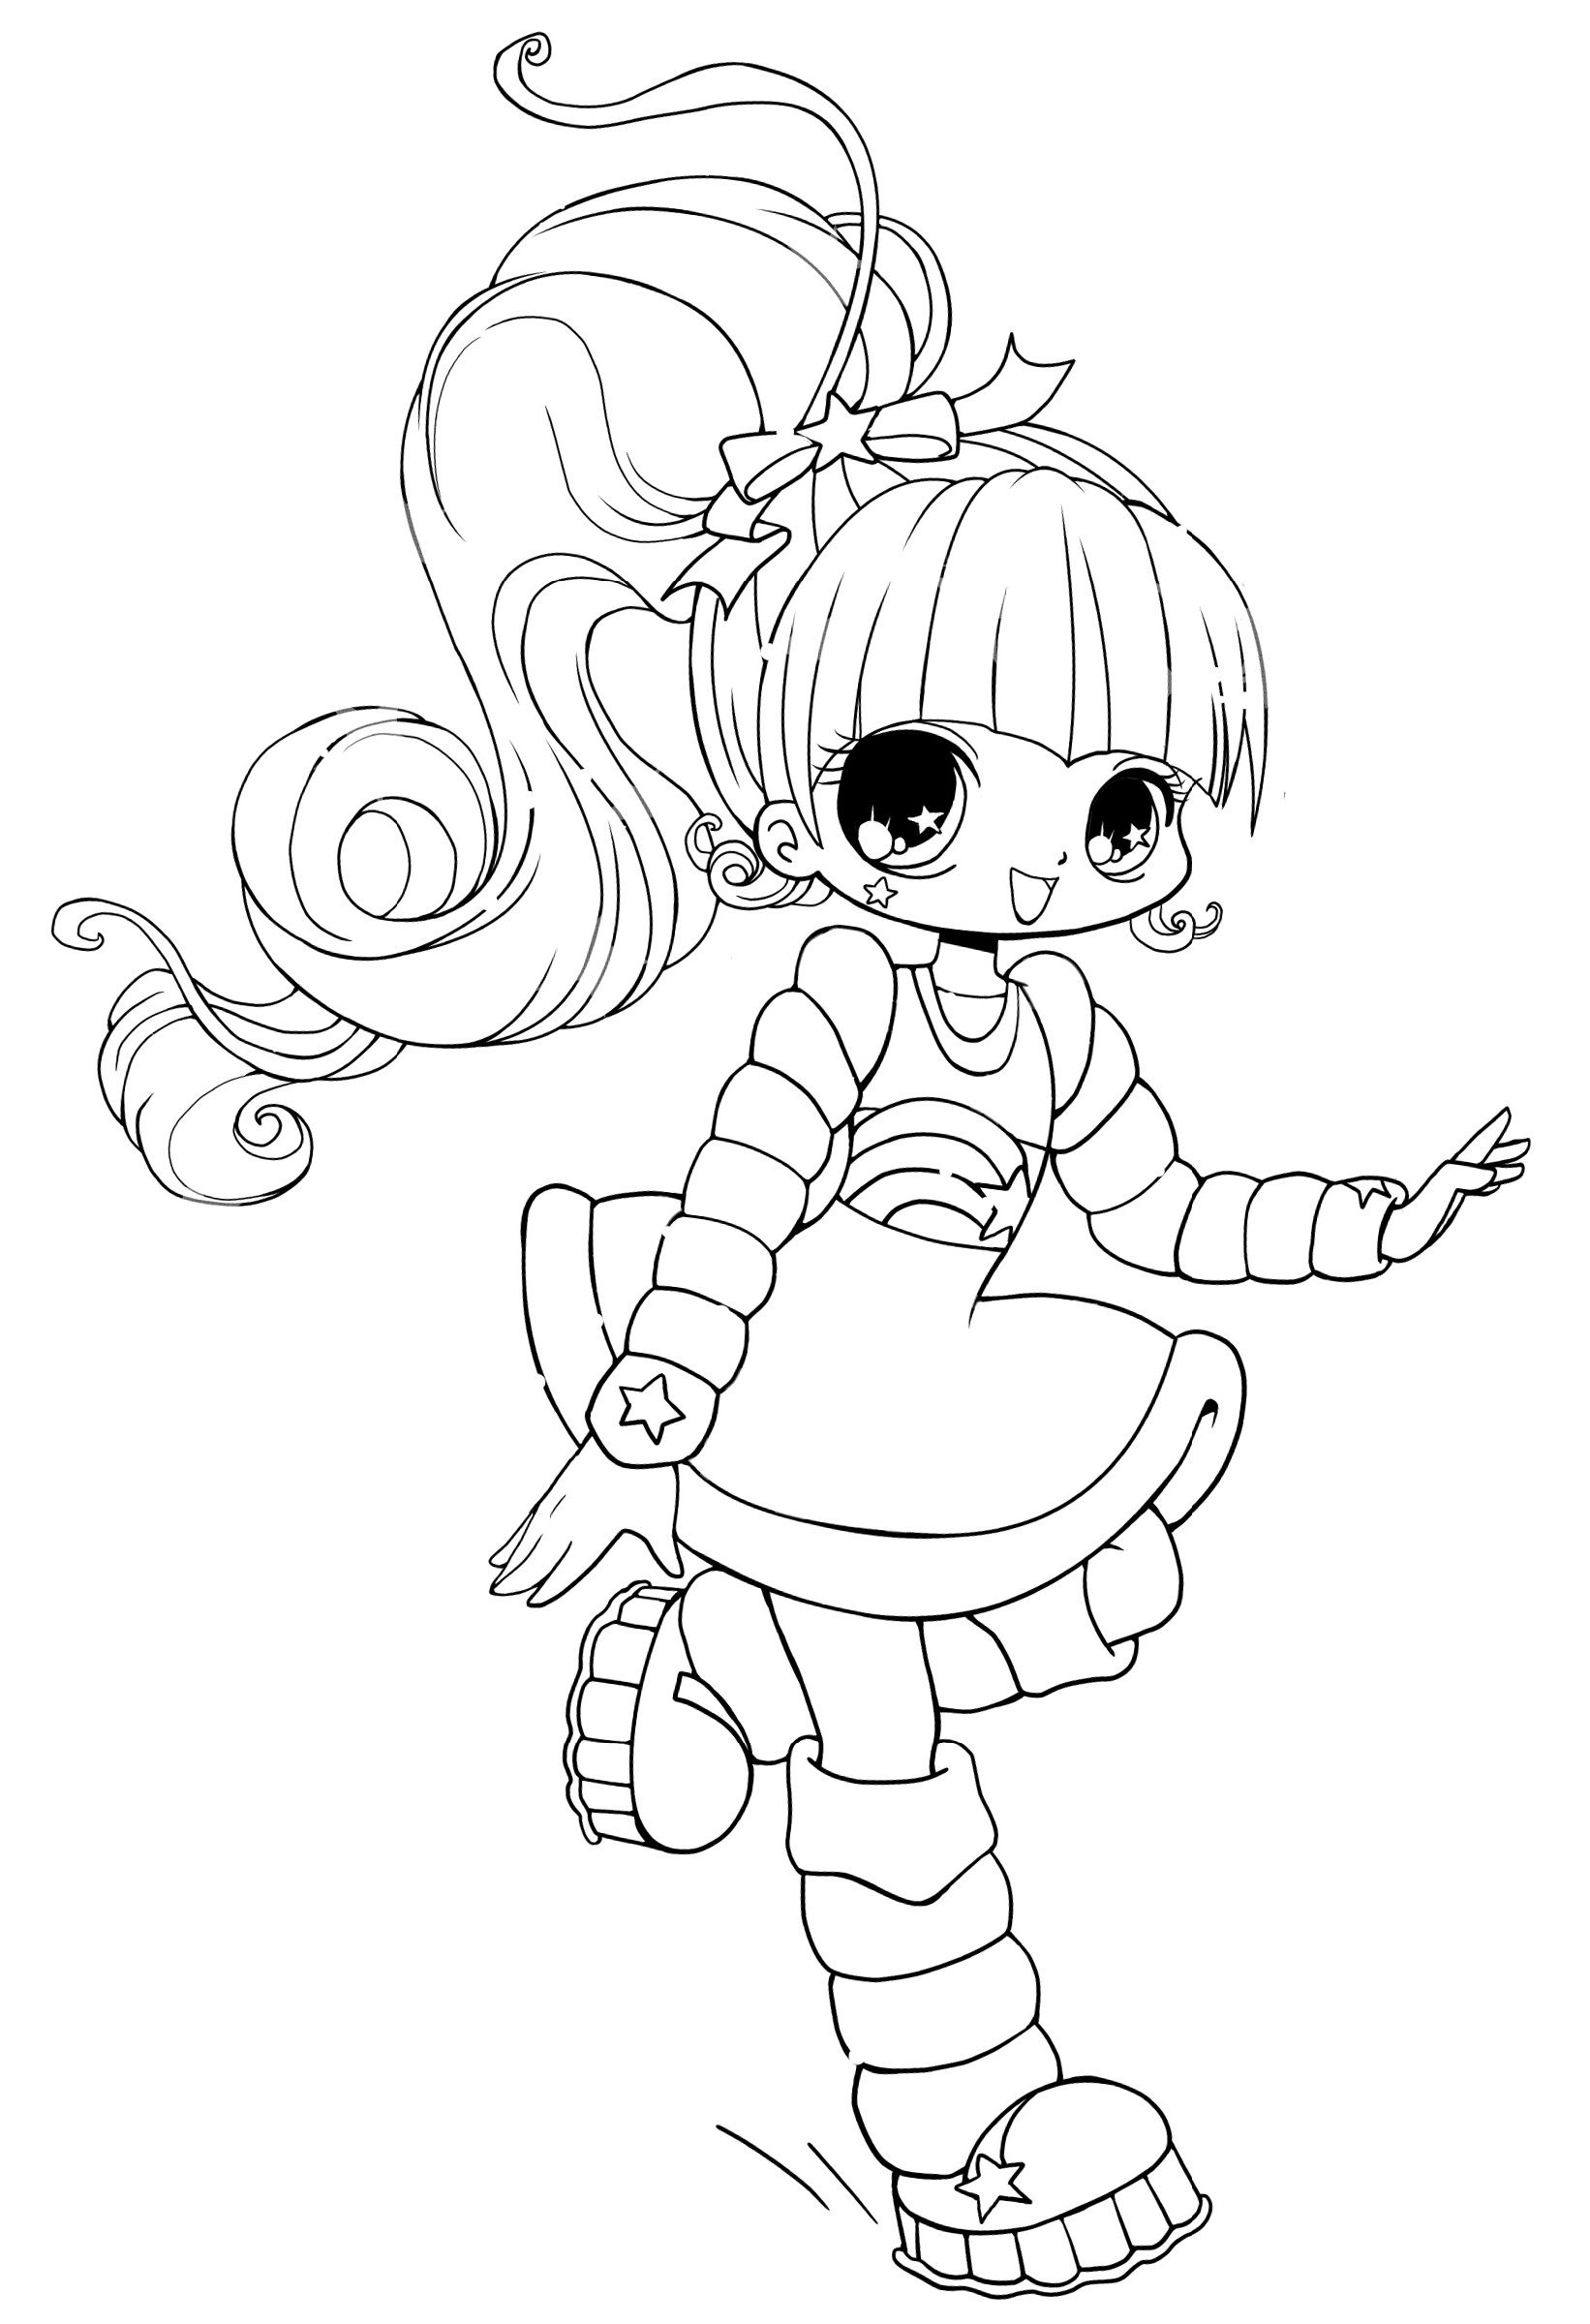 Cute Anime Coloring Pages With Cute Style Educative Printable Coloring Pages Coloring Books Coloring Pages For Kids [ 2400 x 1642 Pixel ]